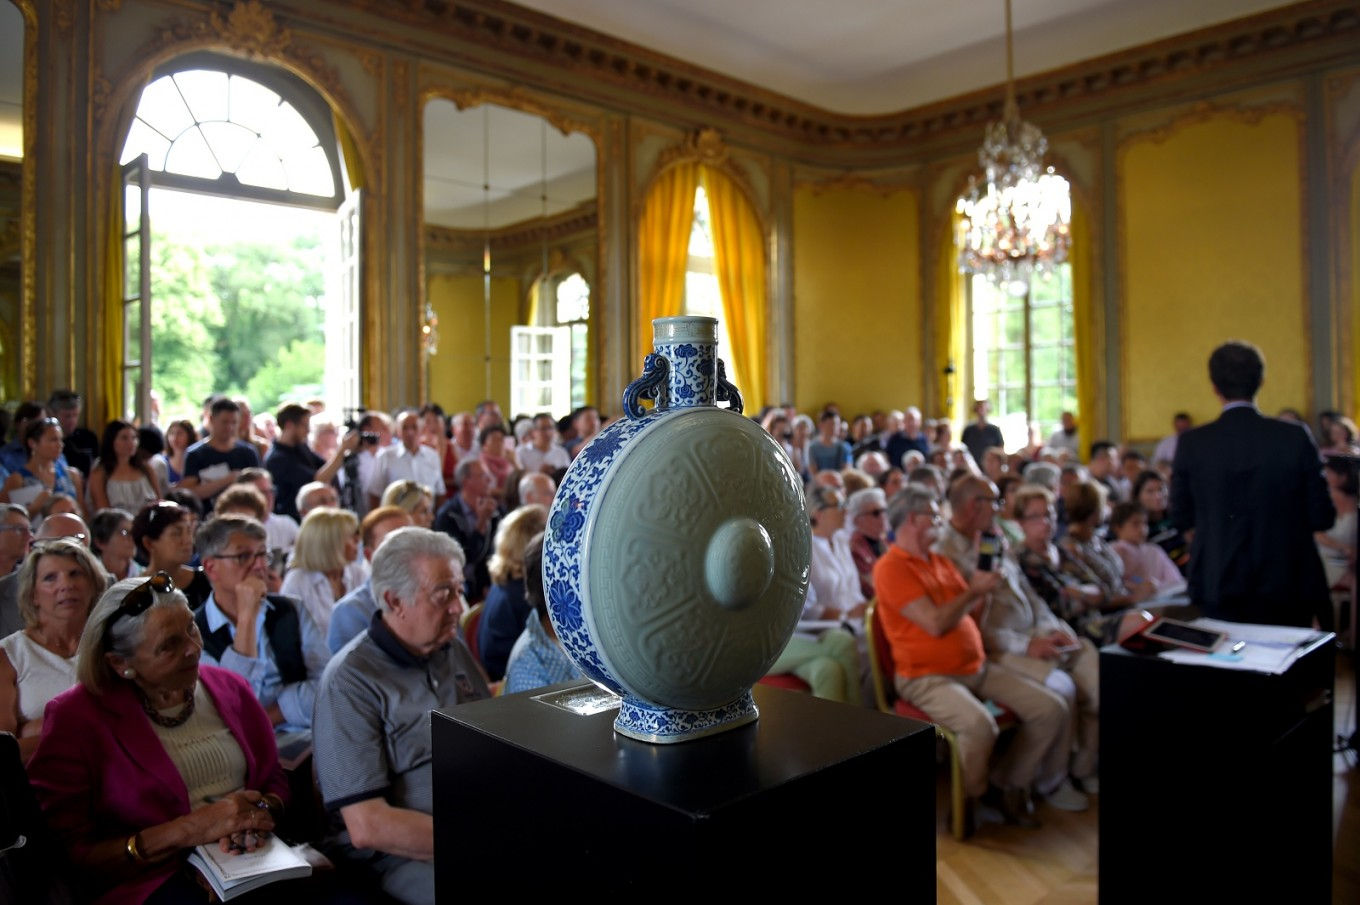 18th century Chinese moon flask sells for 4.1 million euros